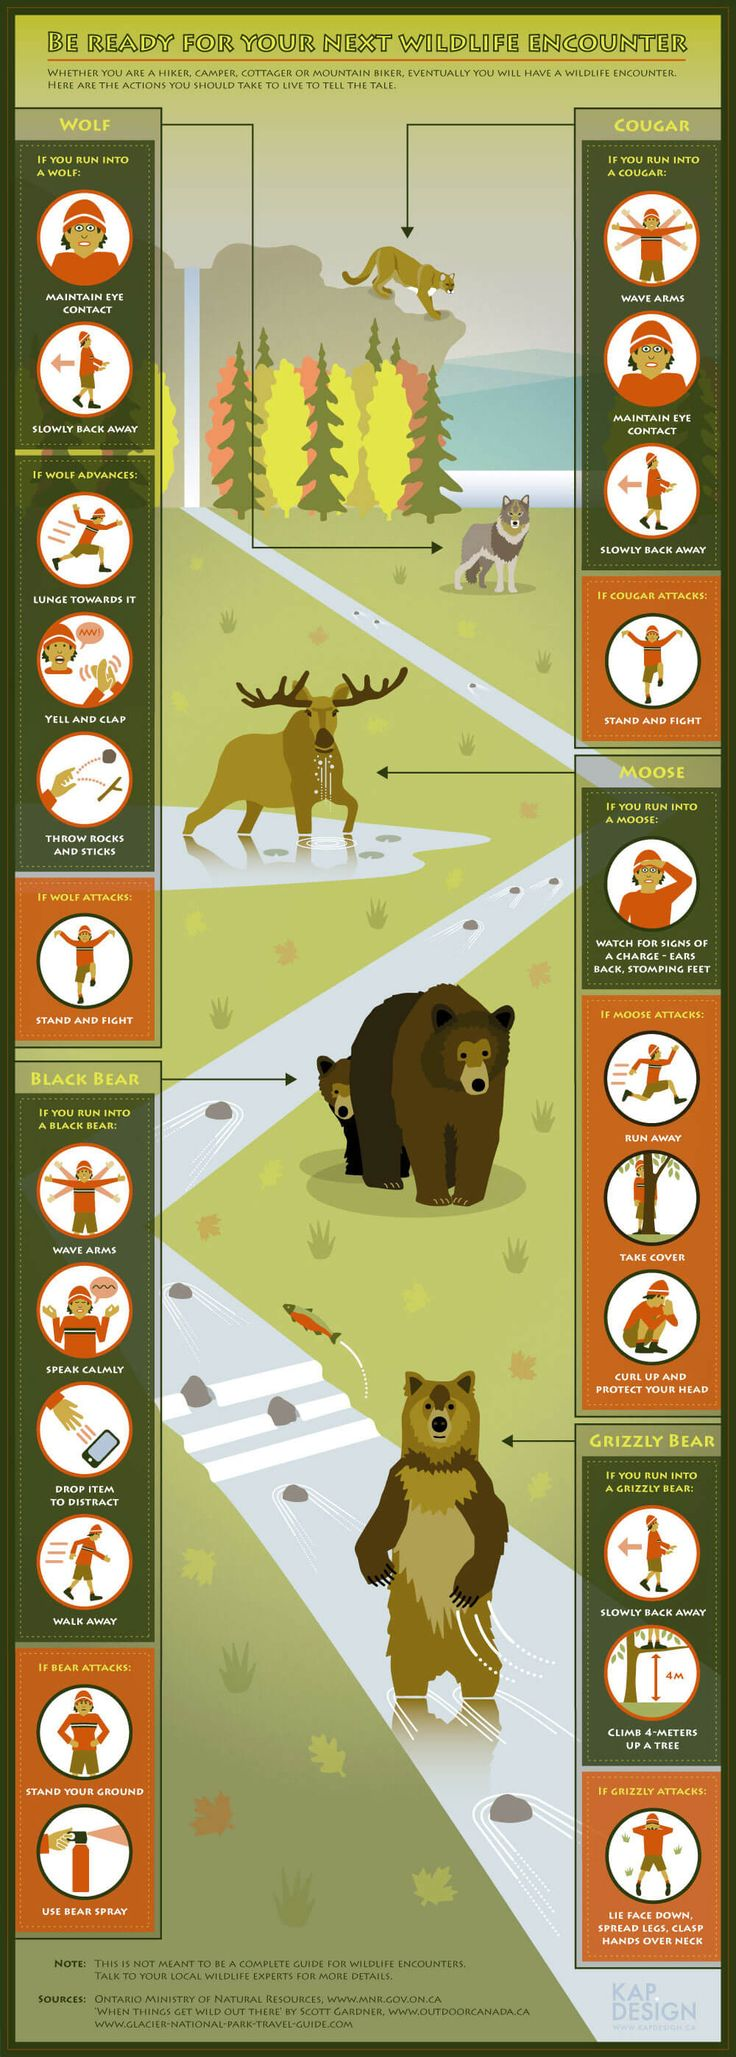 As it says at the bottom of the infographic – this is not supposed to be a complete guide of what to do if you encounter a dangerous animal in the wild. This is just some basic sound advice and useful tips. It is no substitute for…